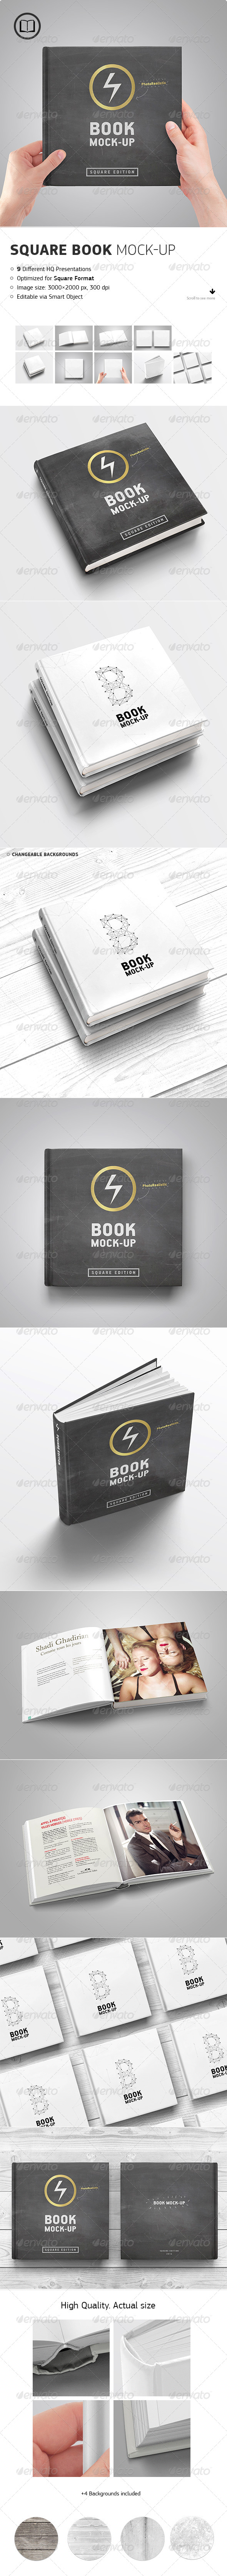 GraphicRiver Square Book Mock-Up 8720820